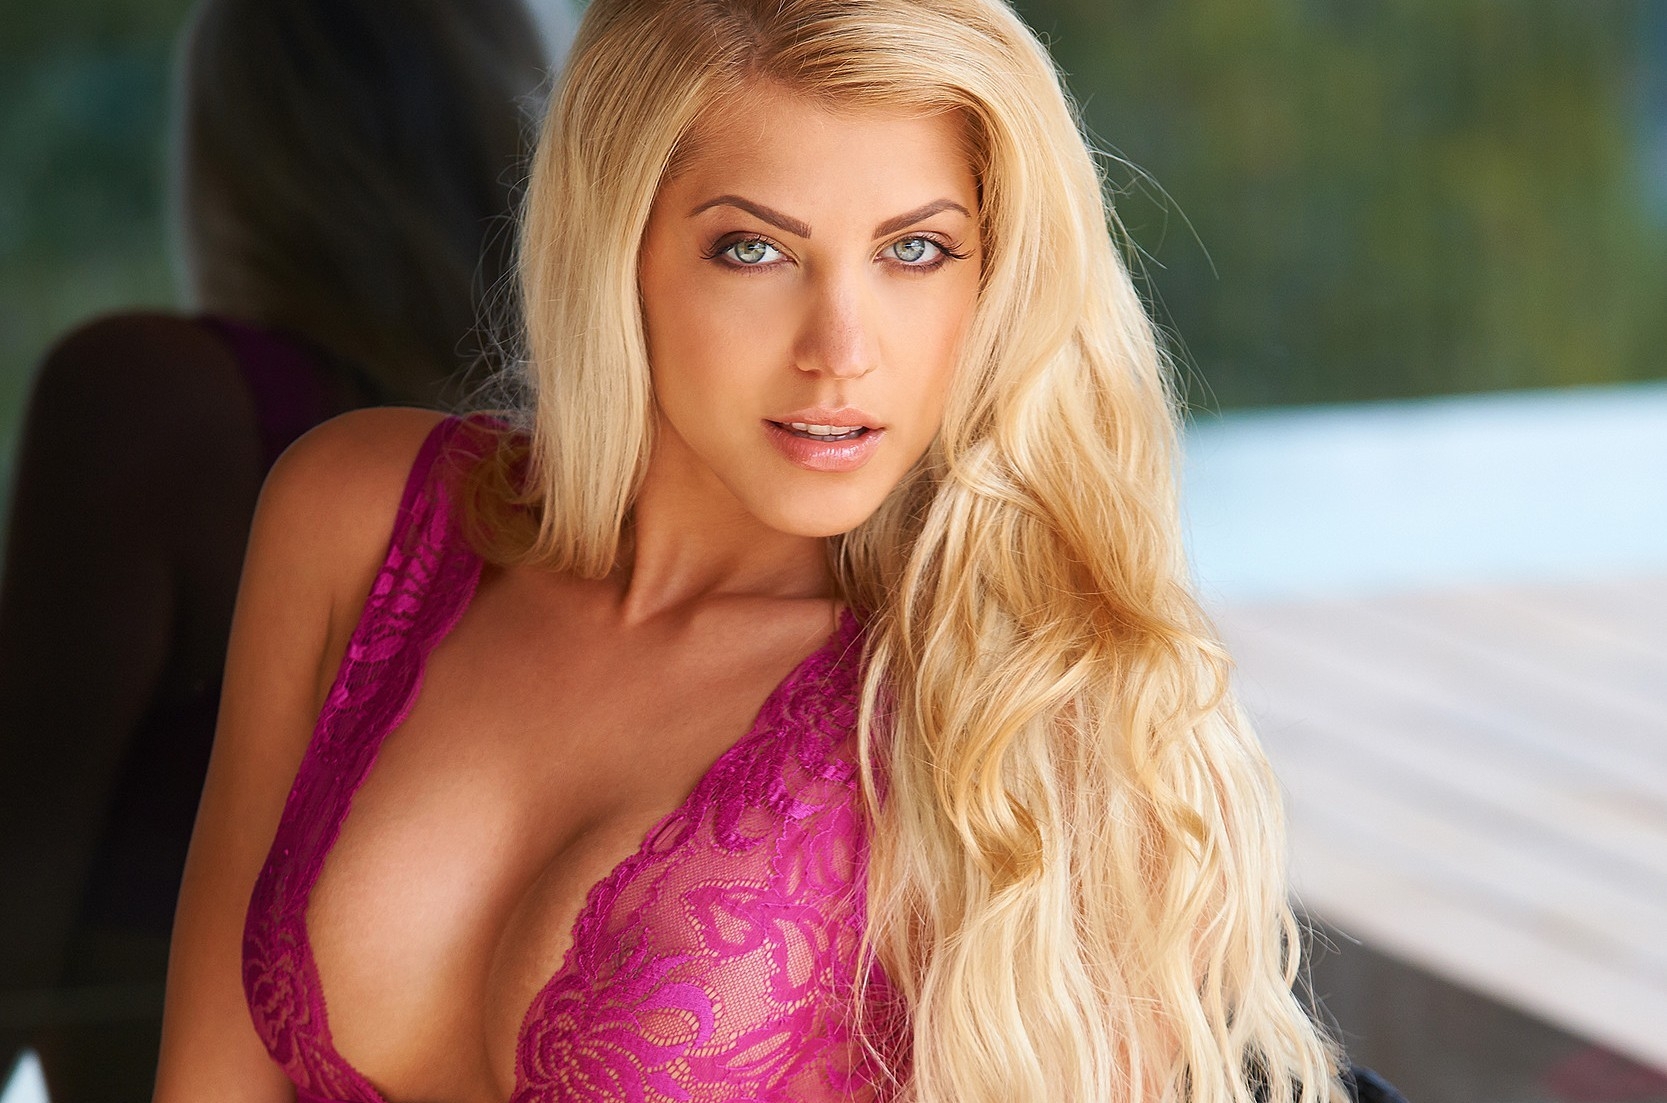 Sarah Nowak - German Playmate of the Month for August 2014